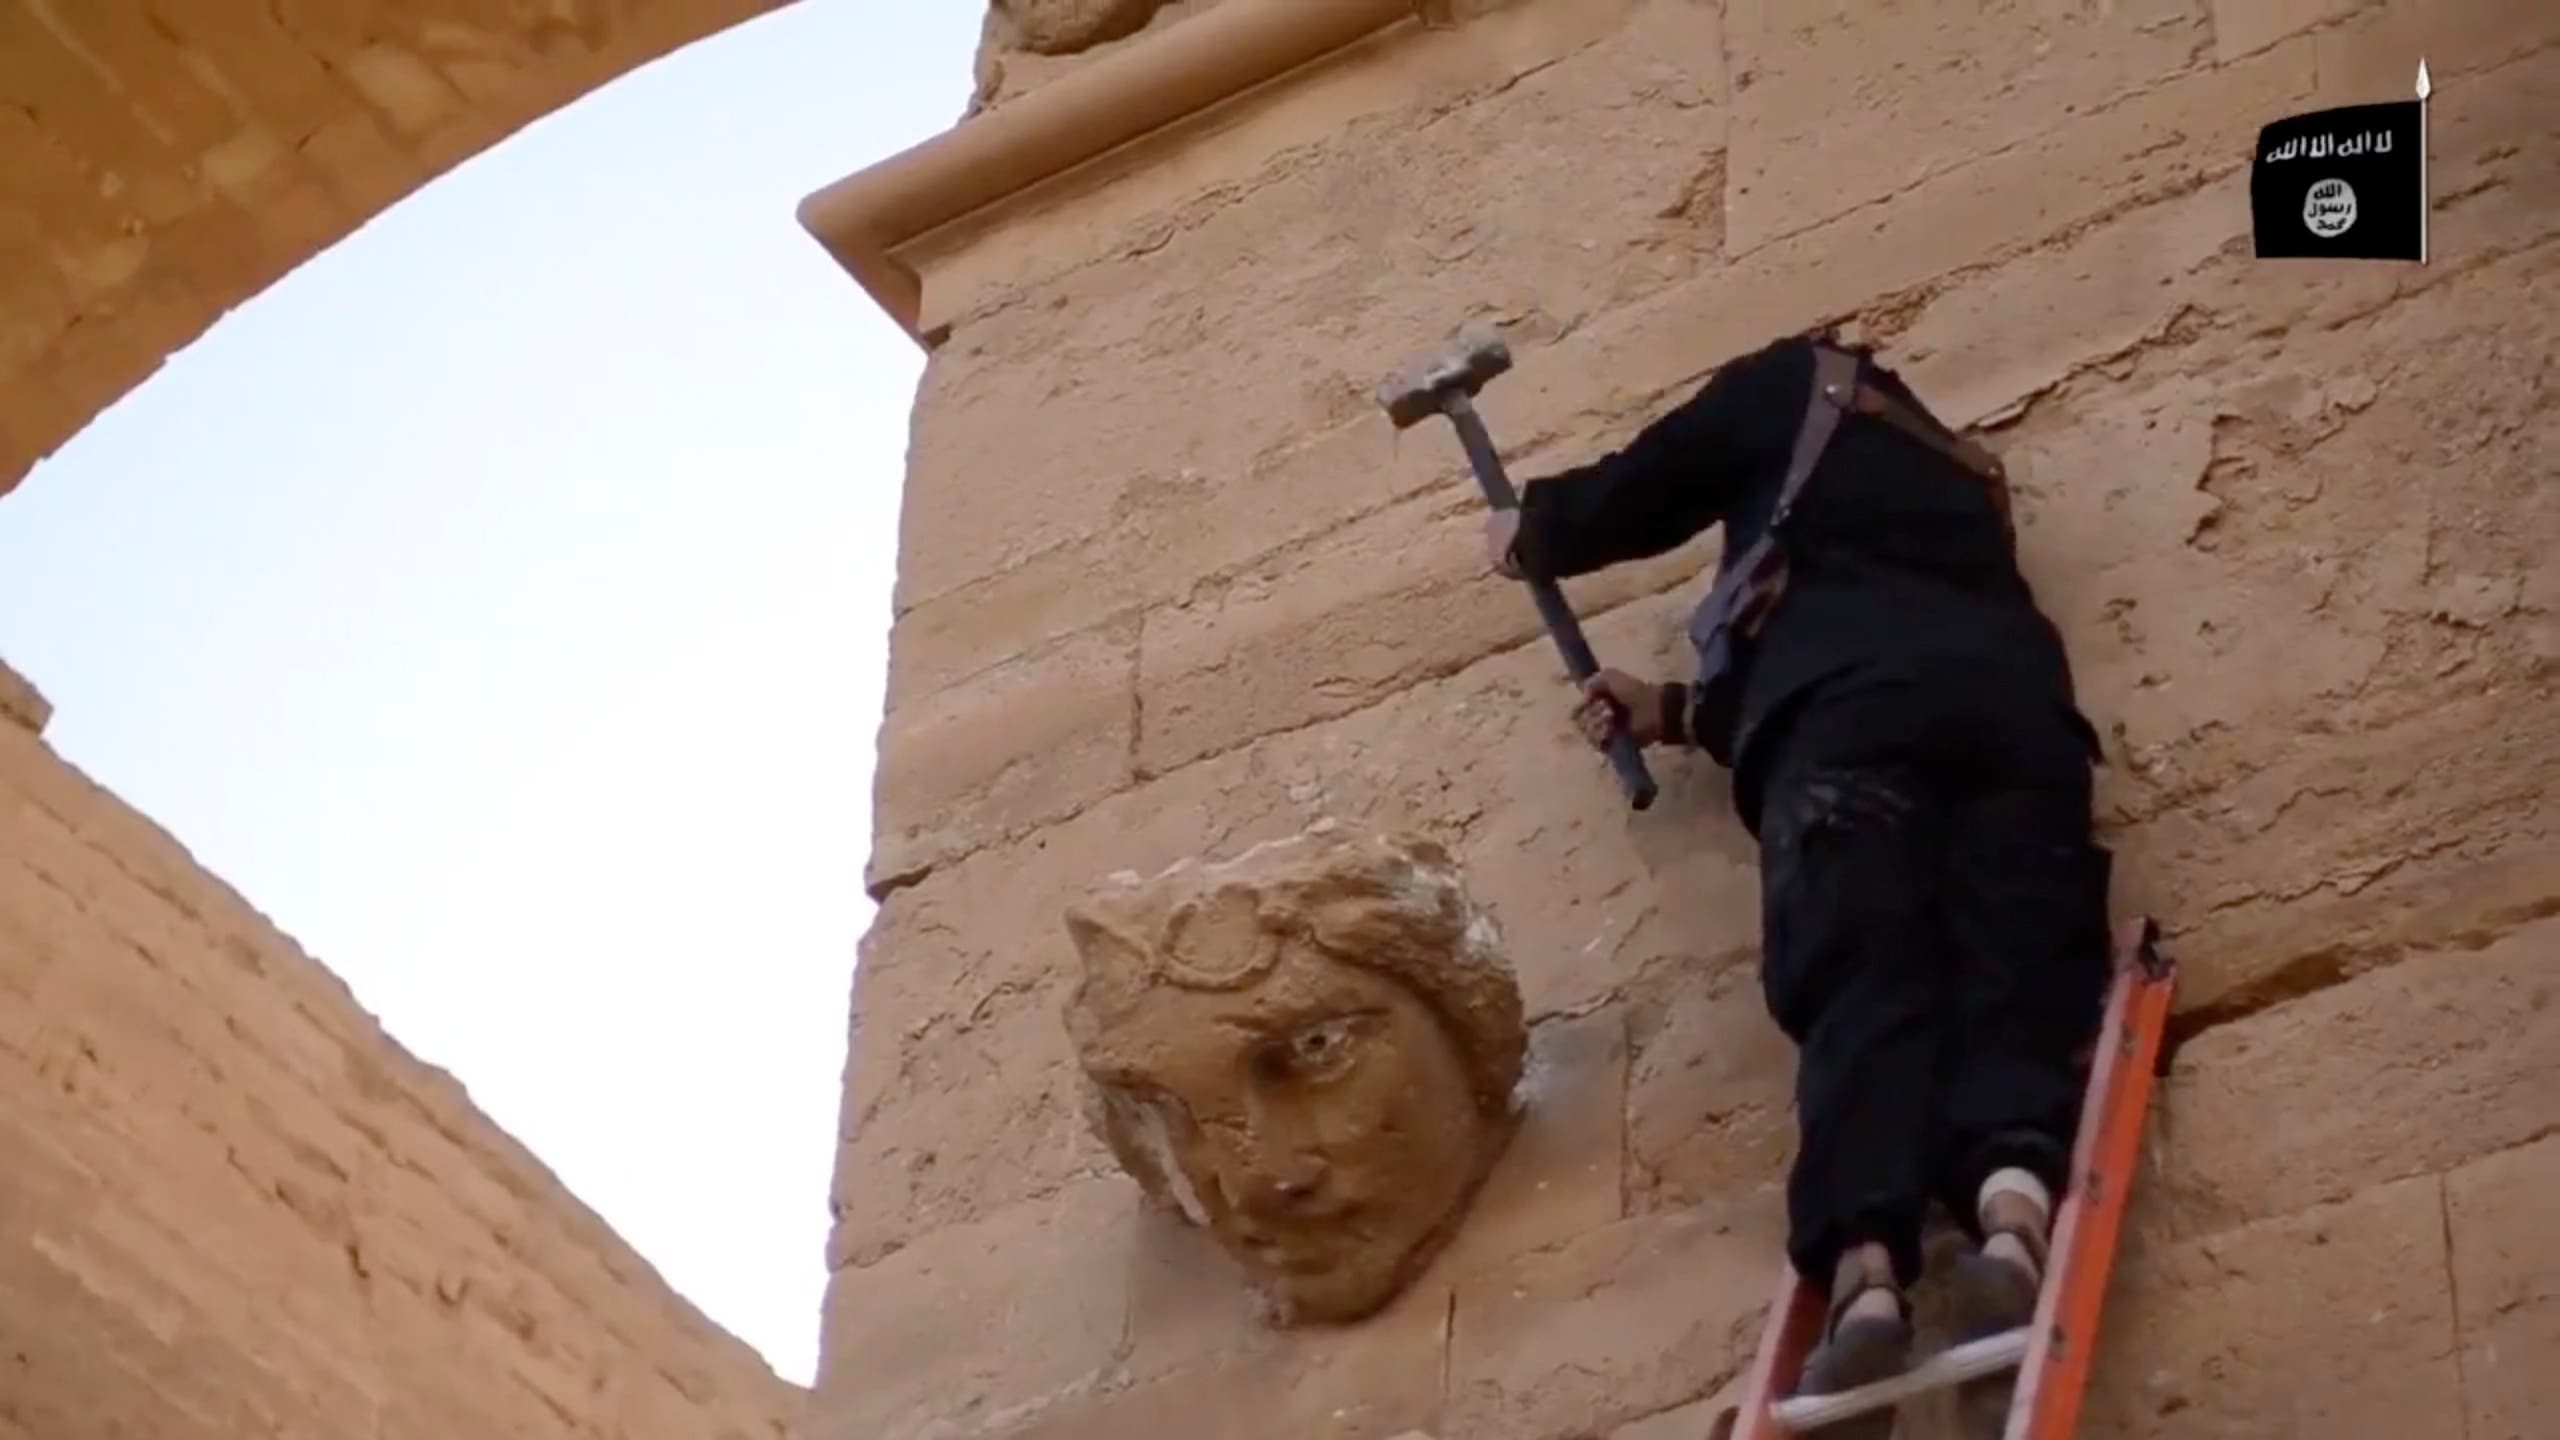 a militant hammers away at a face on a wall in Hatra, a large fortified city recognized as a UNESCO World Heritage site. (File photo: AP)